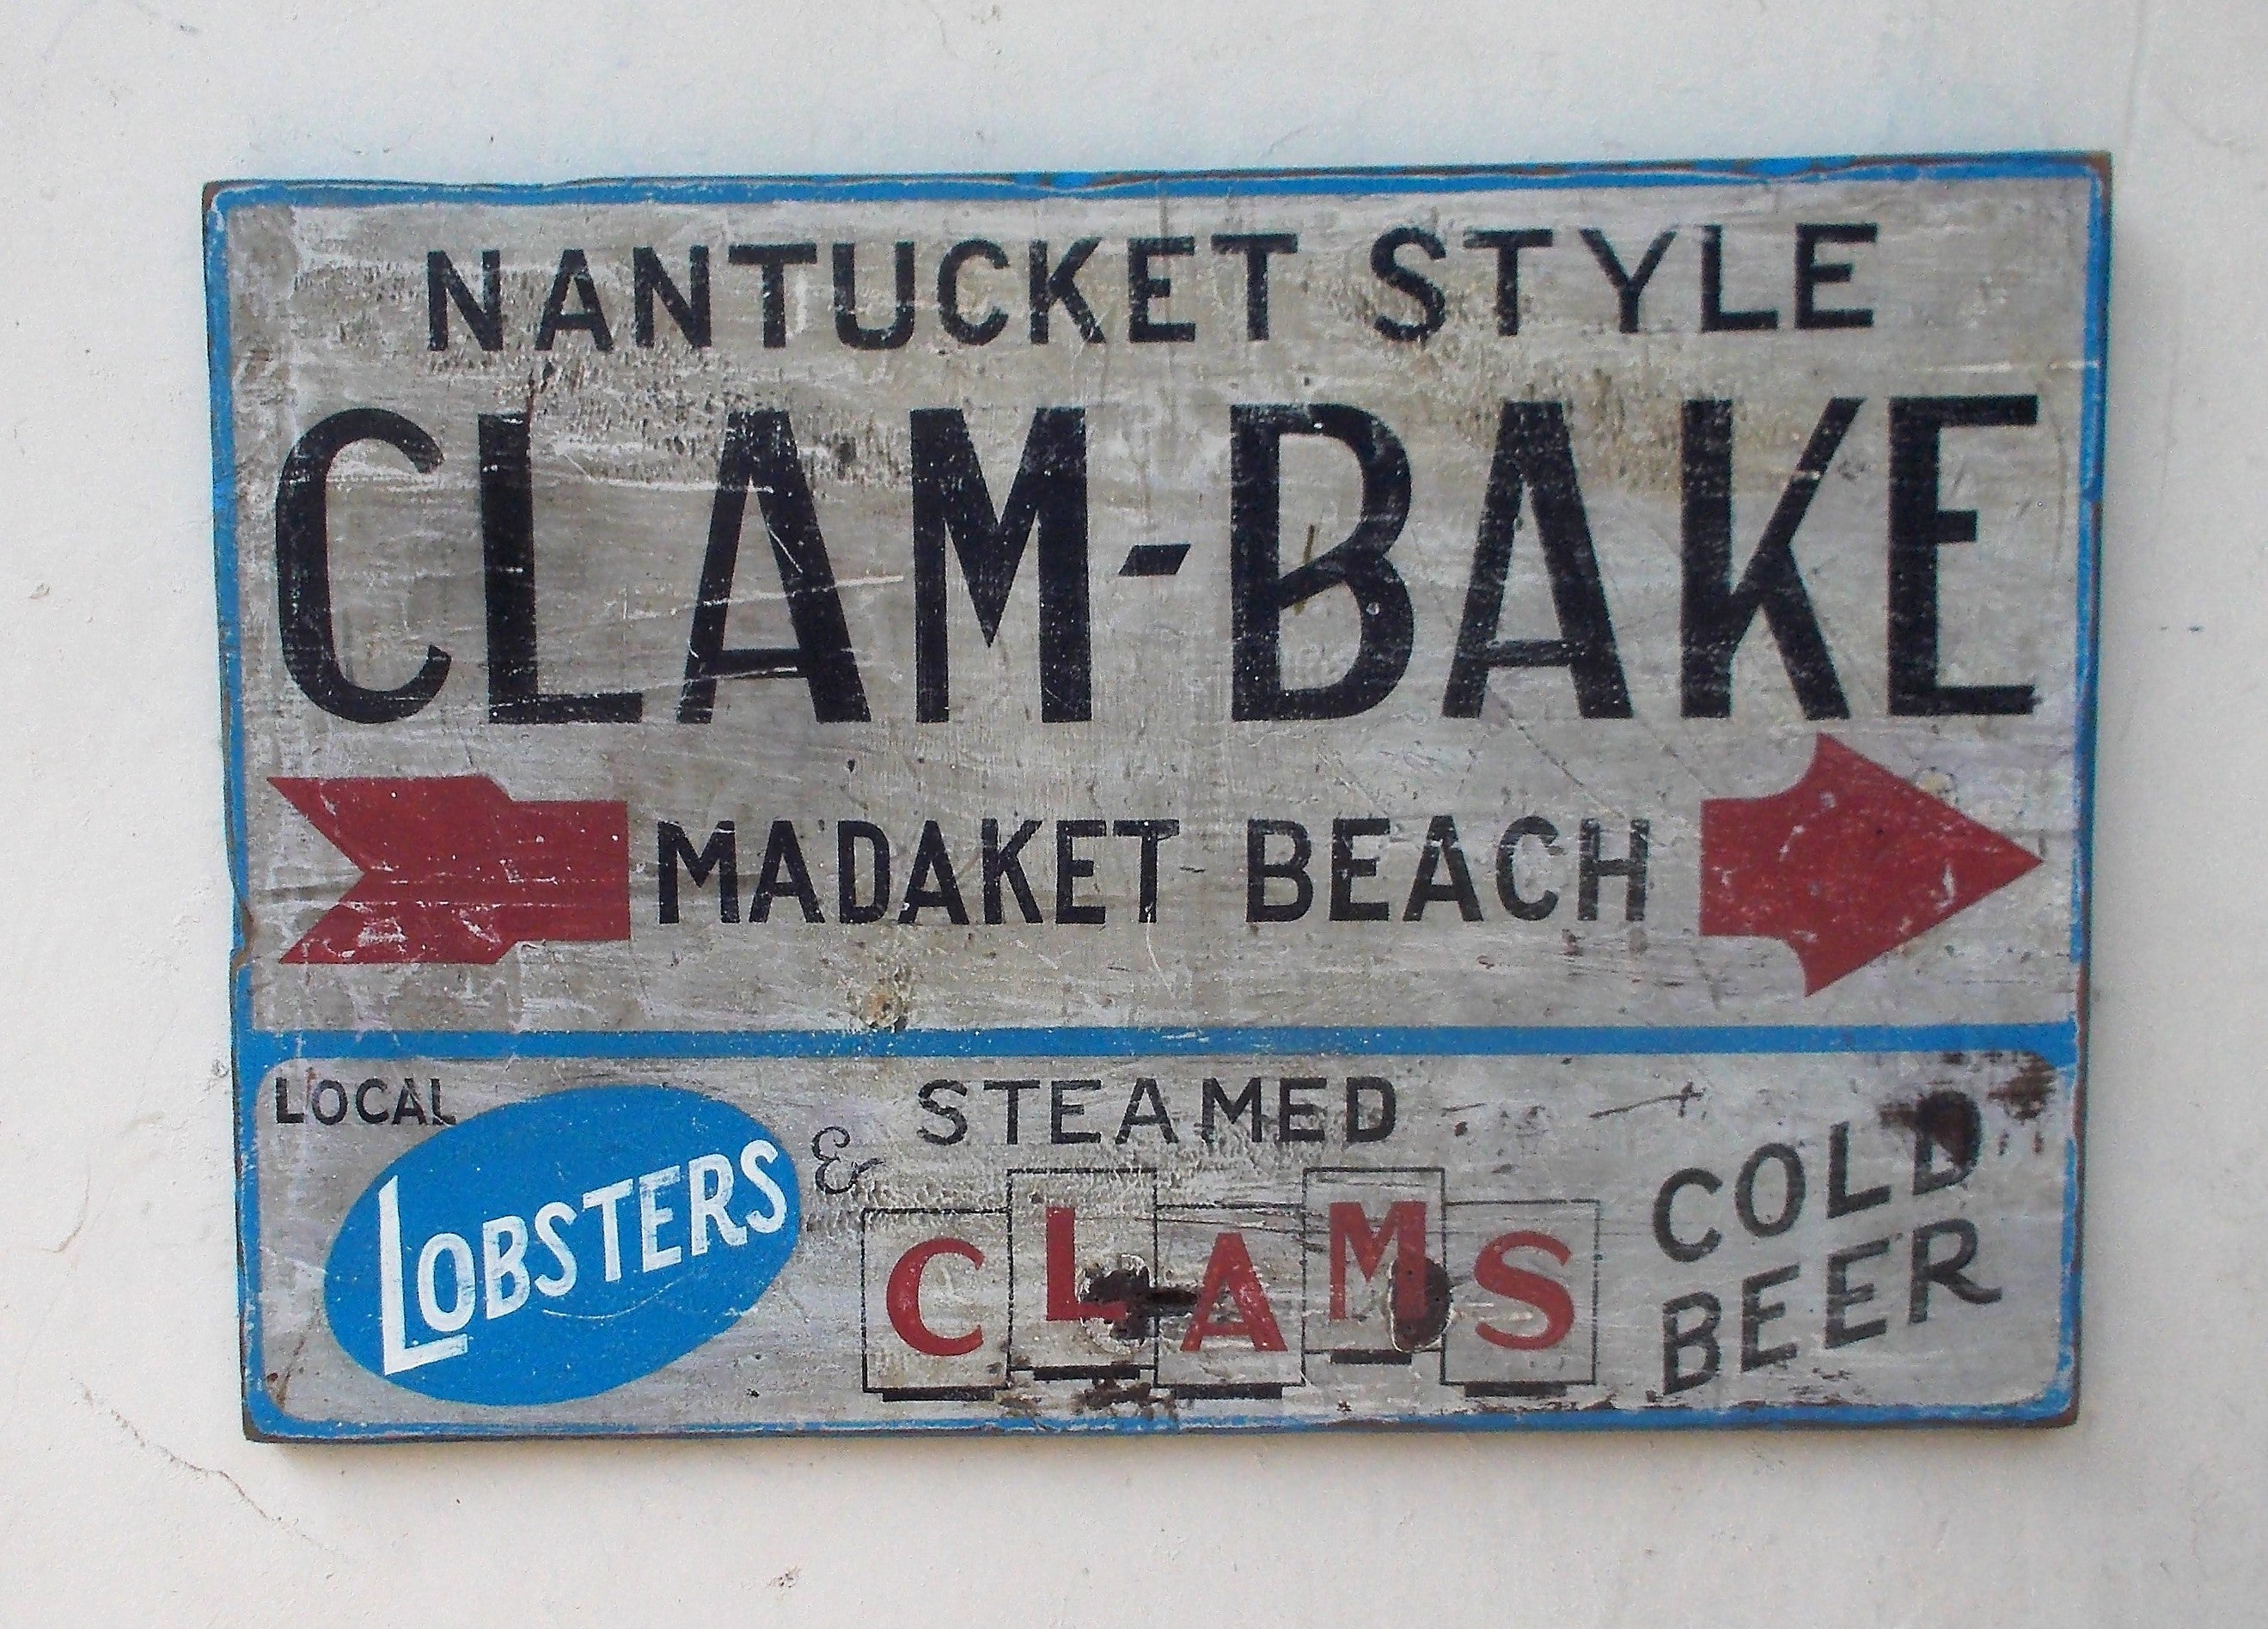 Nantucket Style Clam-Bake